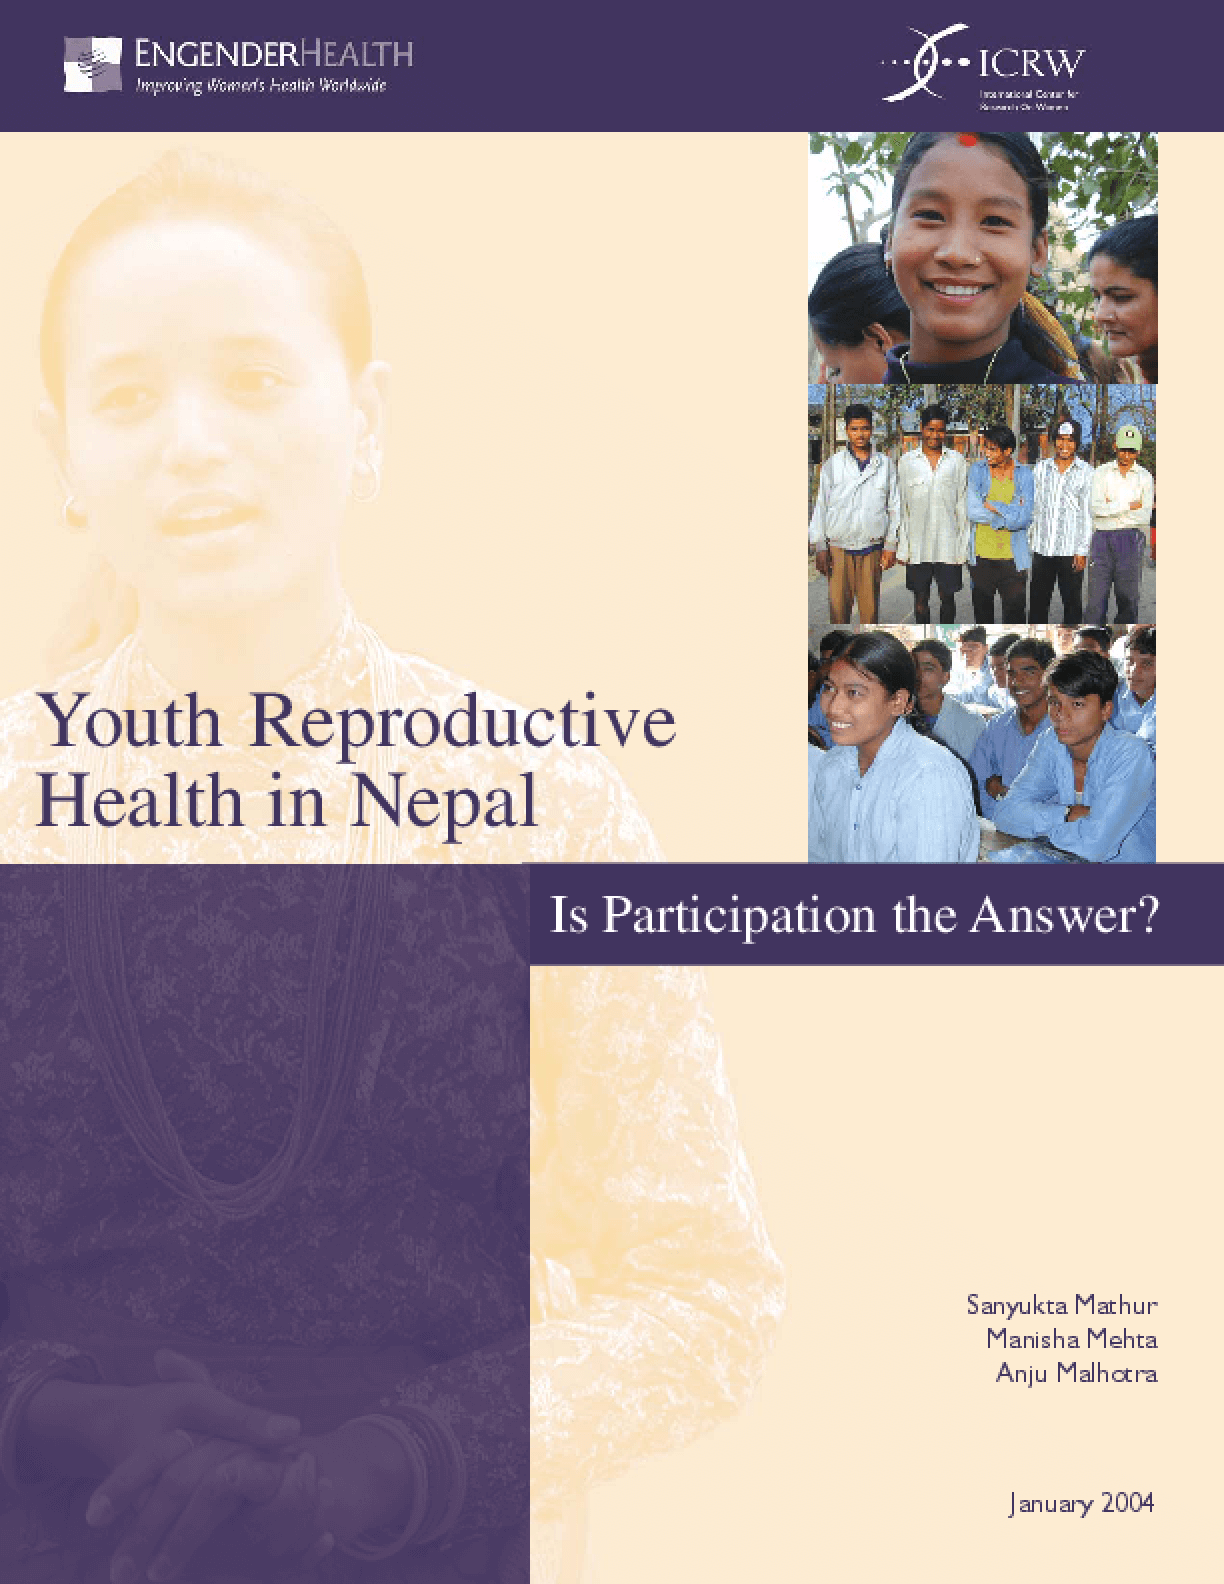 Youth Reproductive Health in Nepal: Is Participation the Answer?